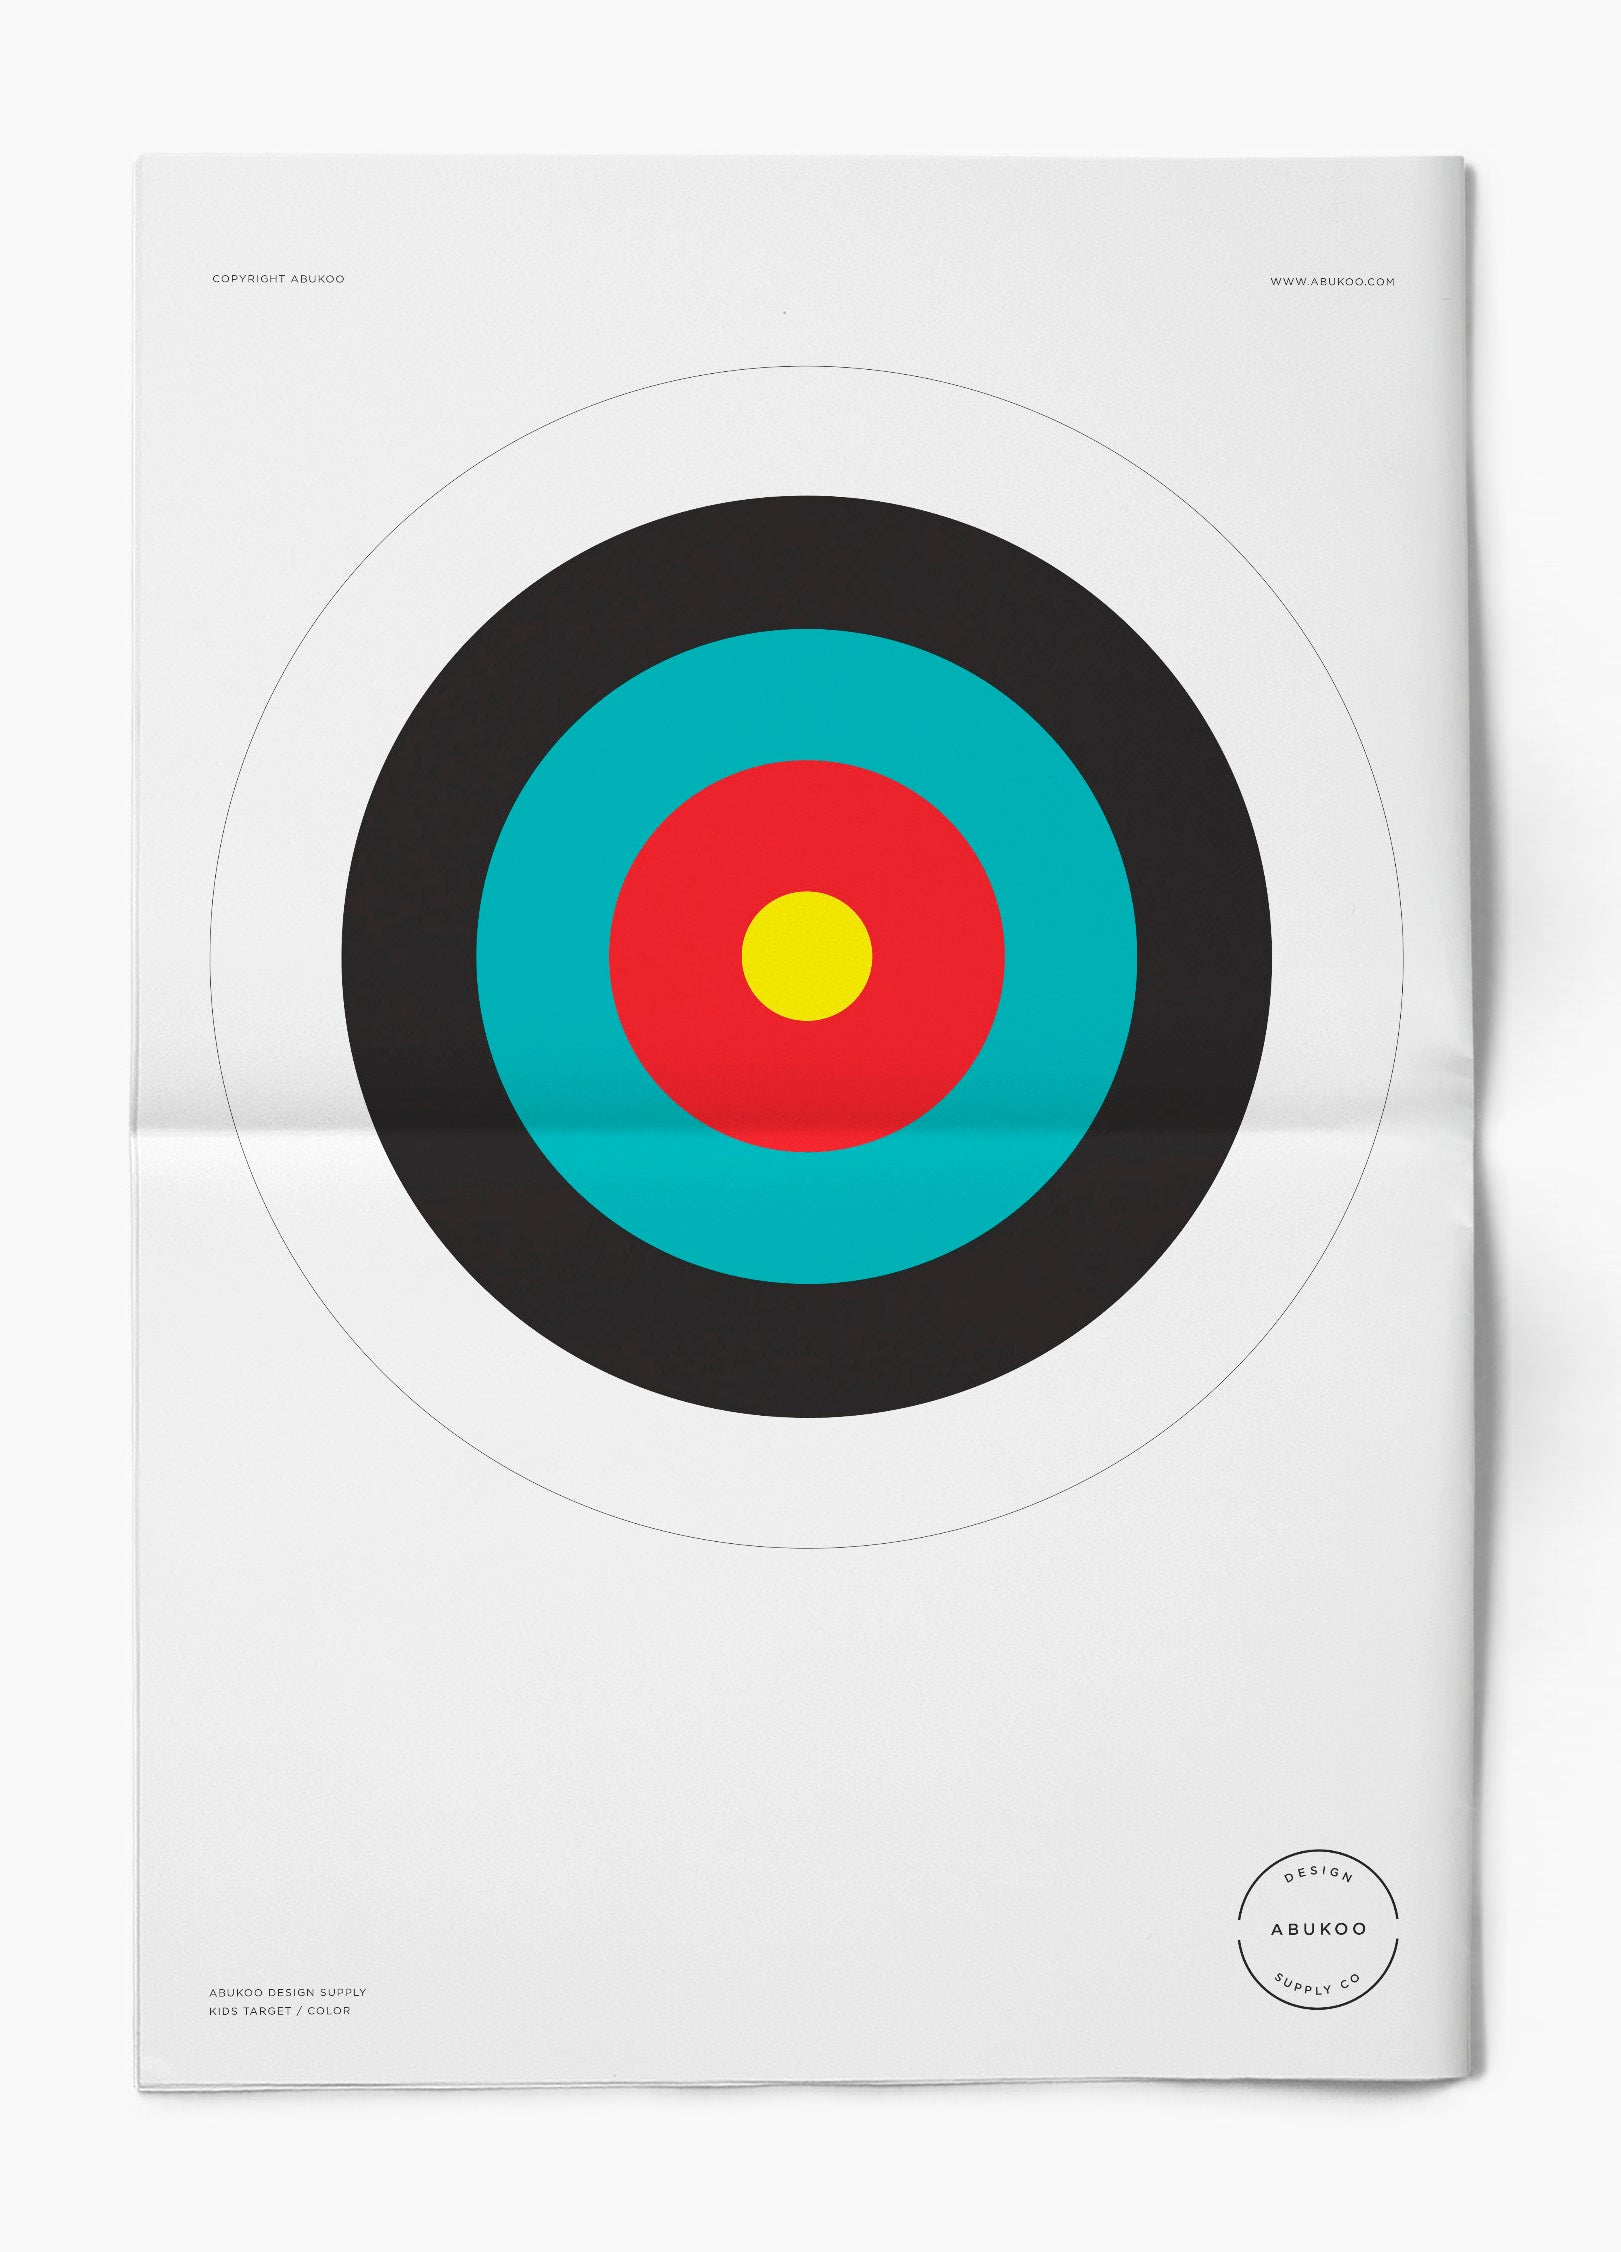 image regarding Printable Archery Targets titled Abukoo Printable Goals - Cuba Gallery